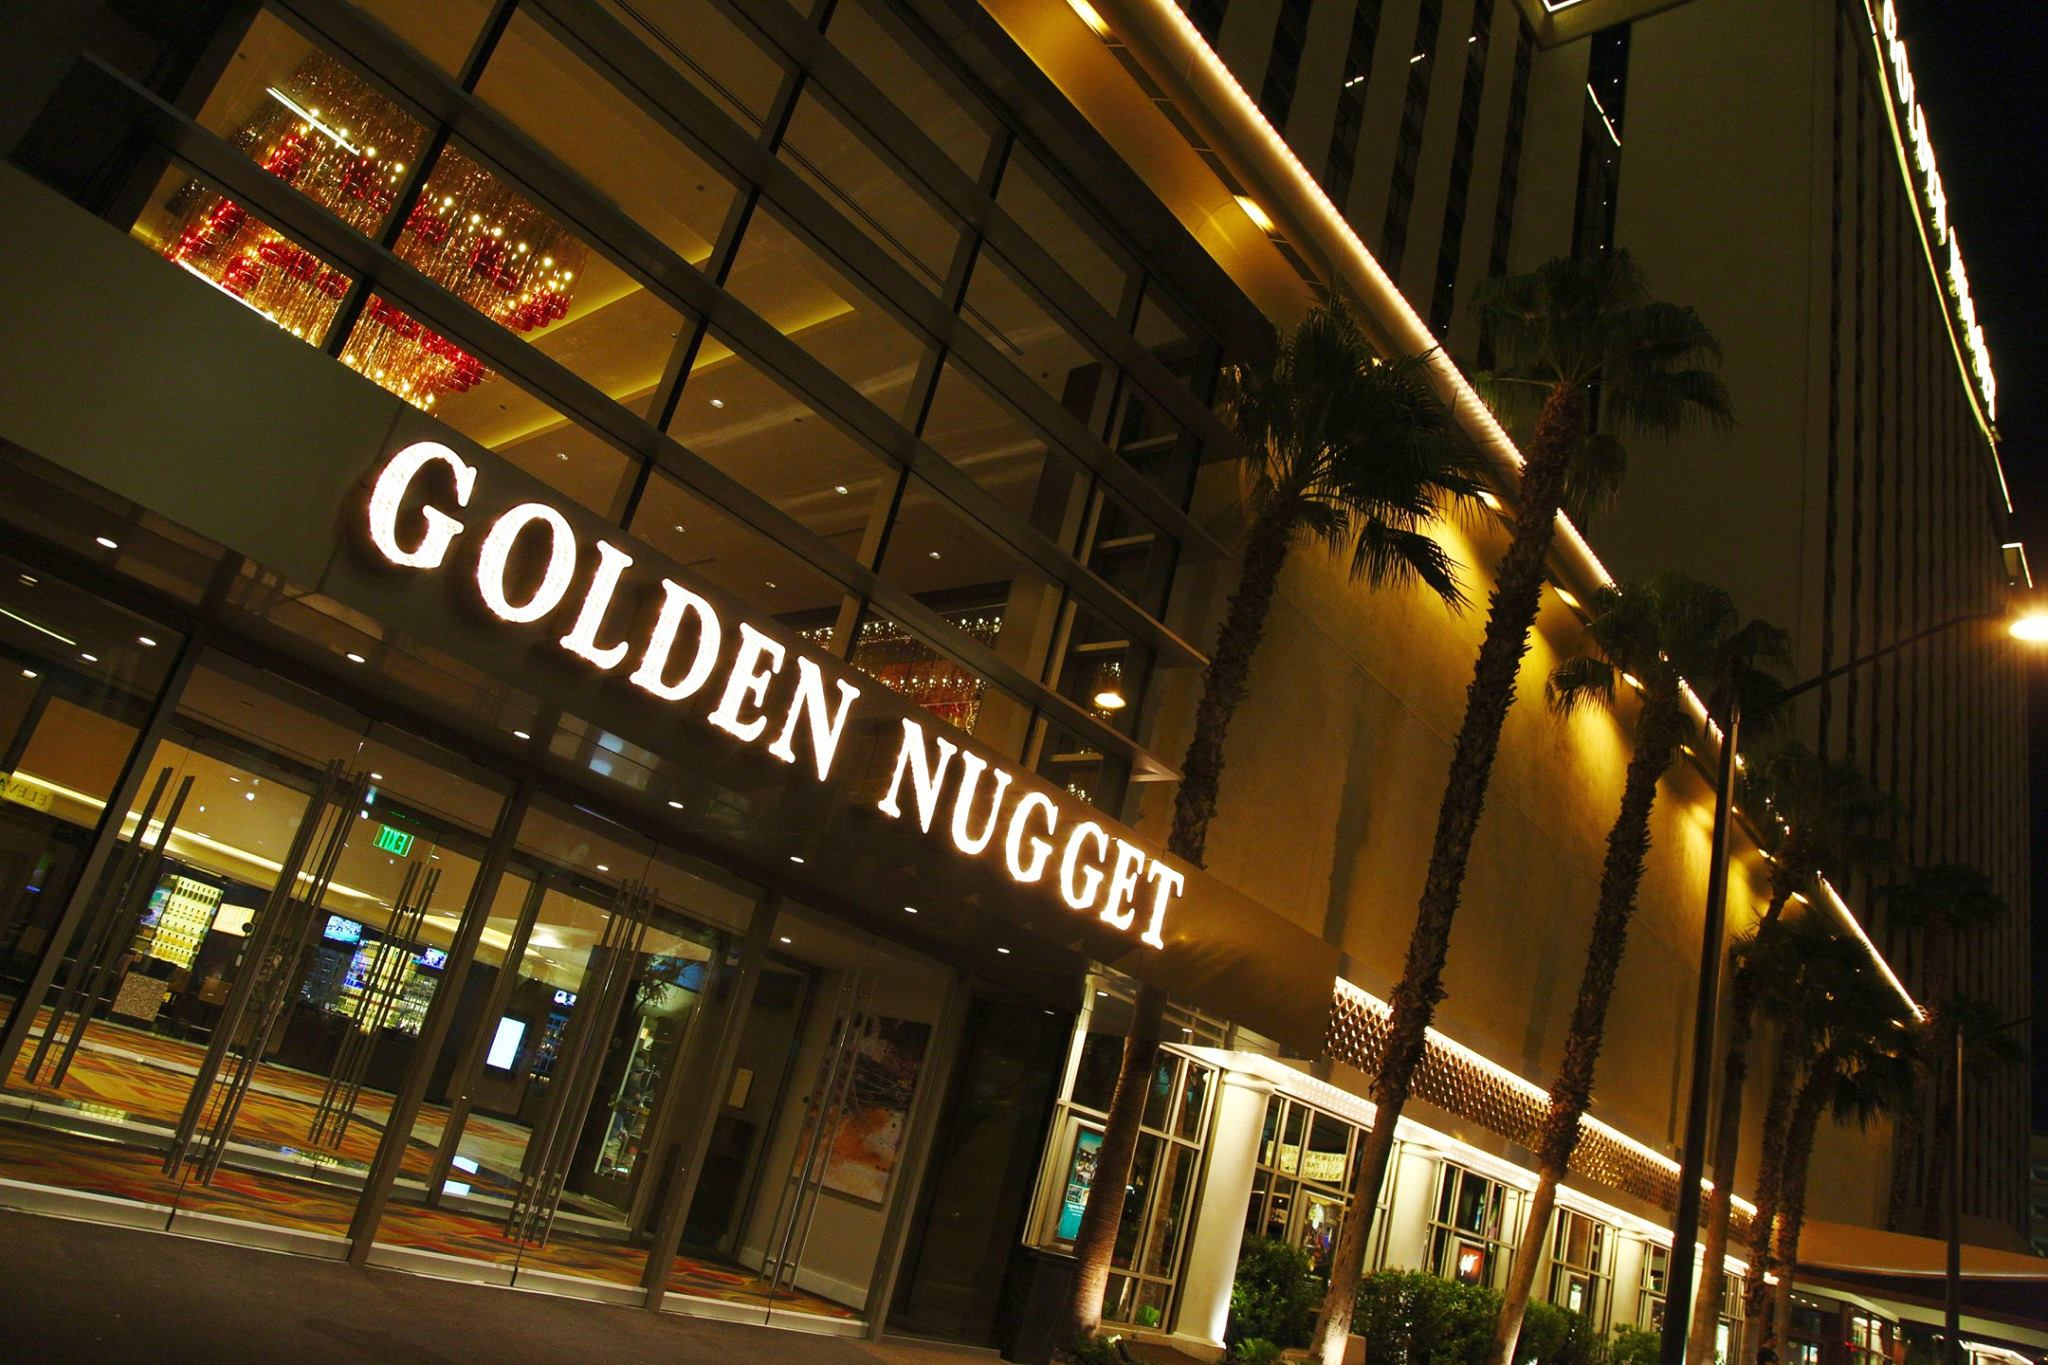 Golden Nugget Hotel & Casino Downtown Las Vegas